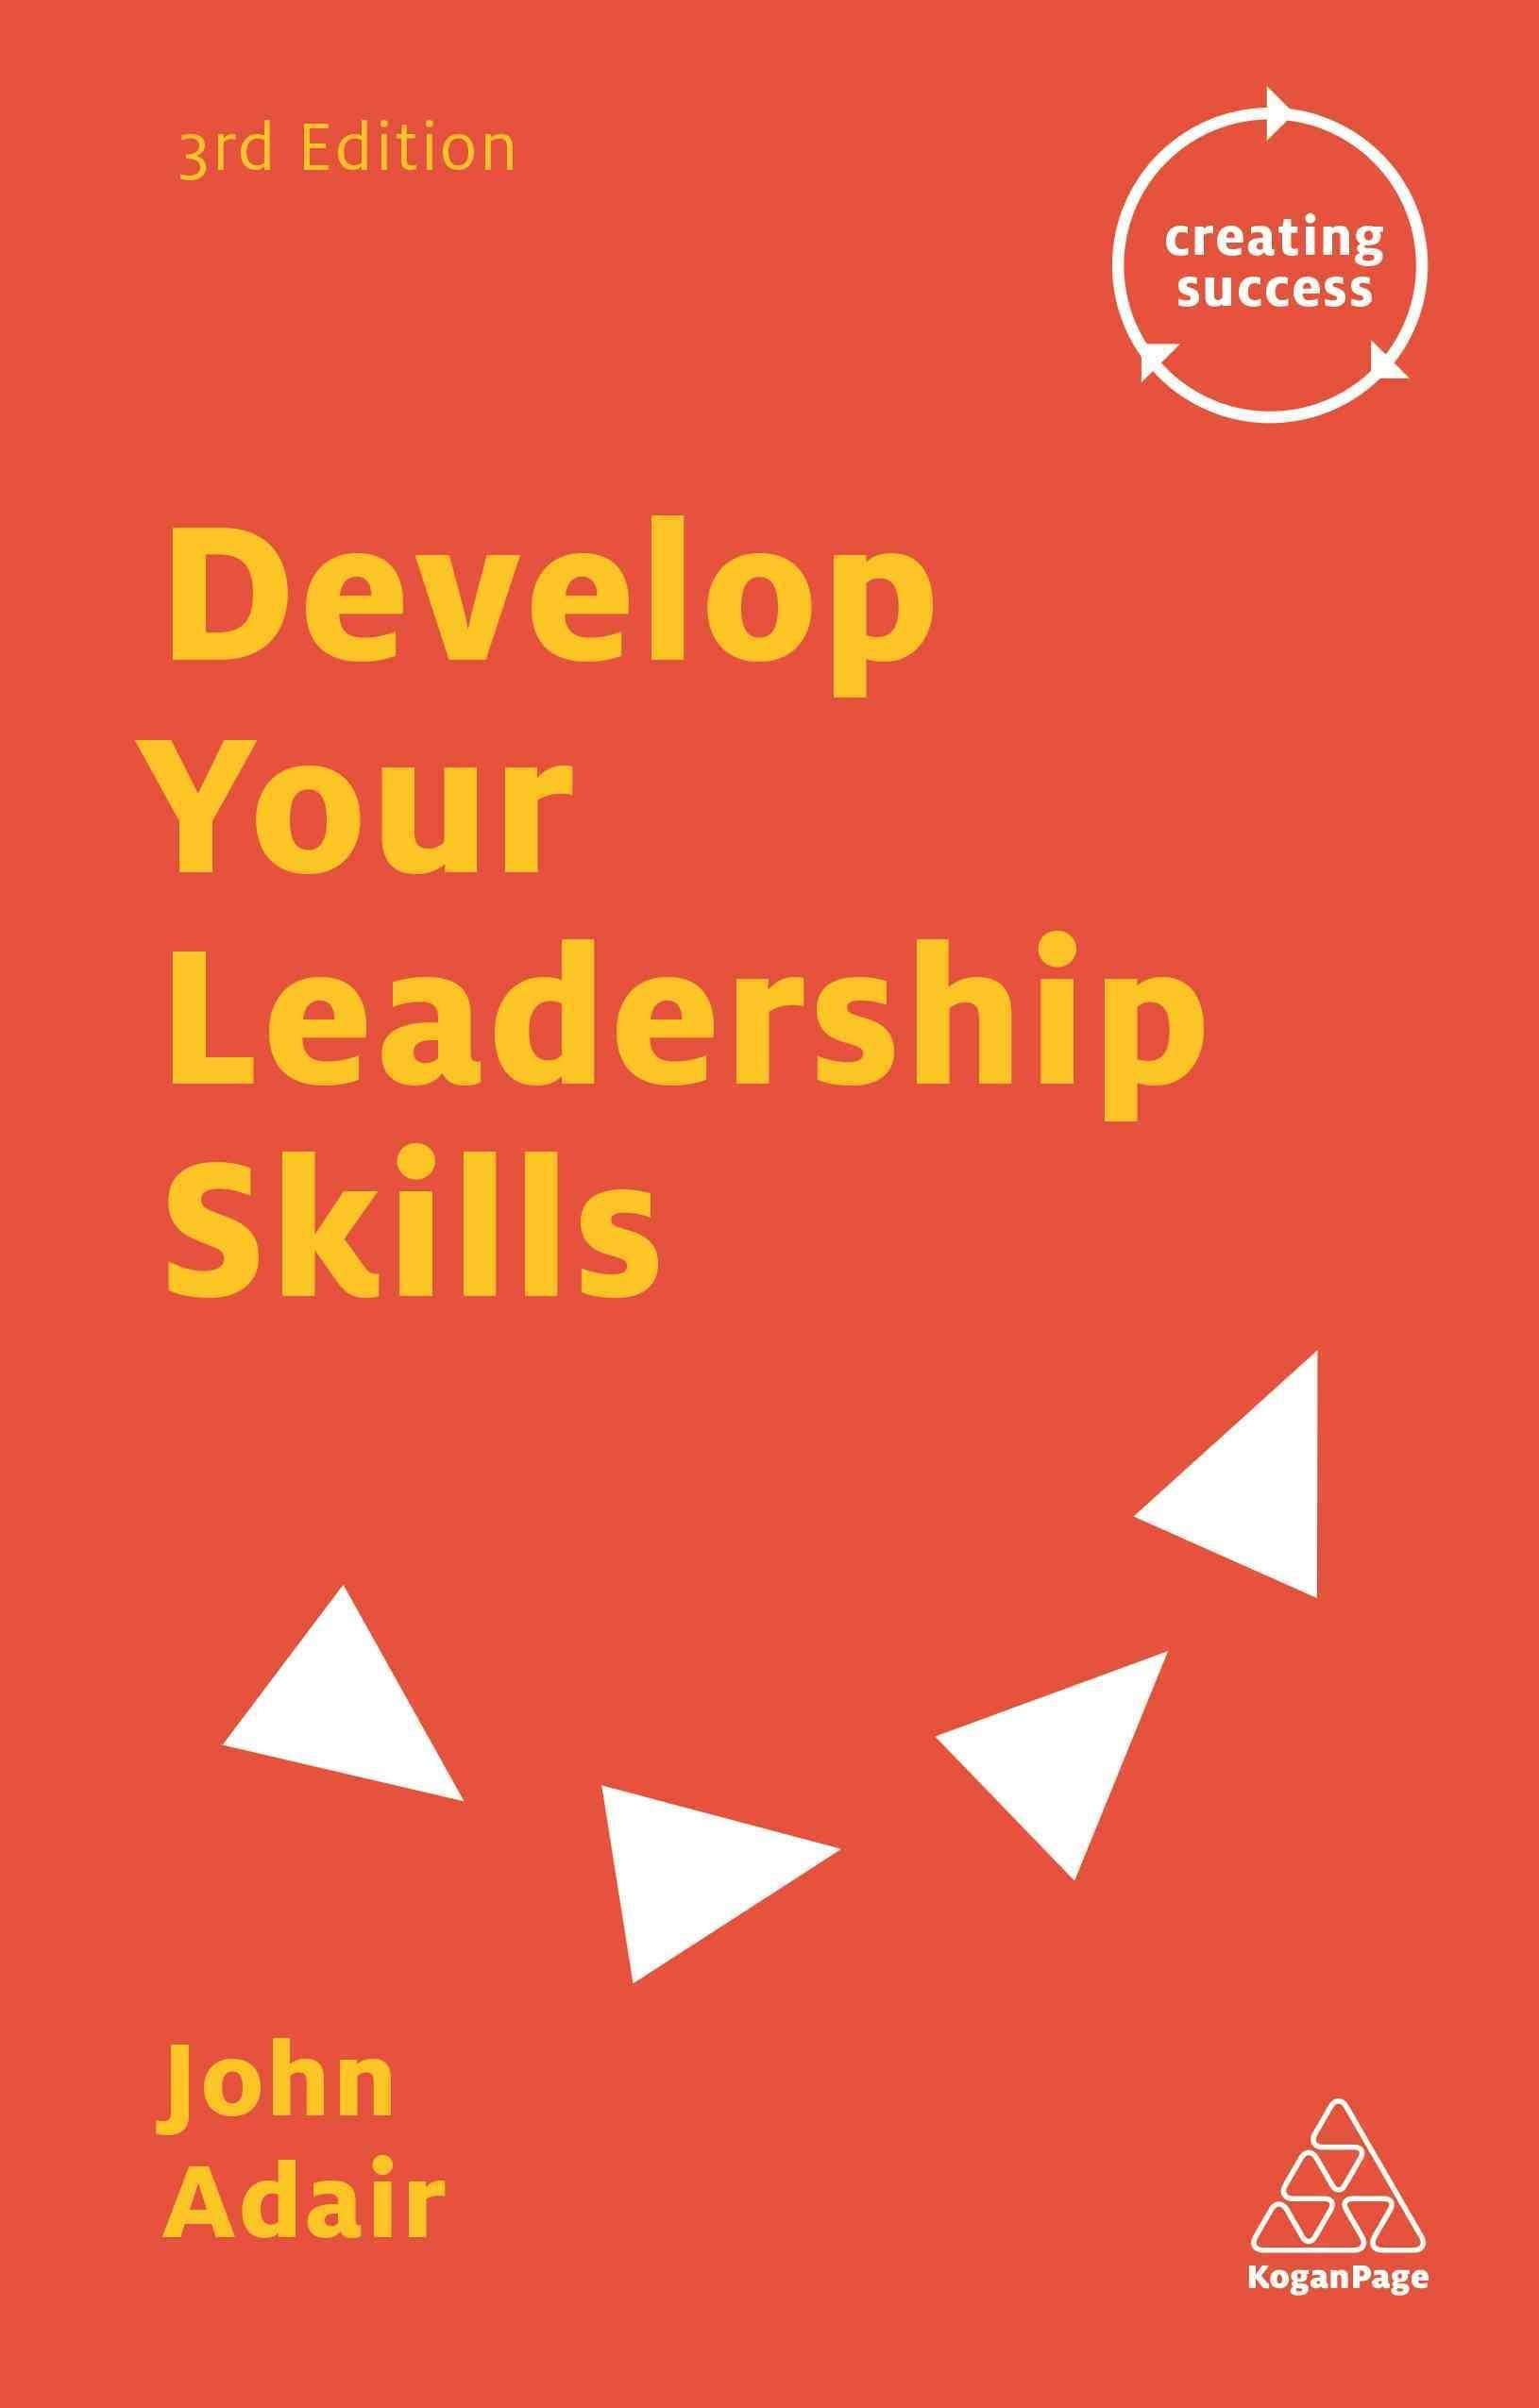 Develop Your Leadership Skills Is John Adair S Most